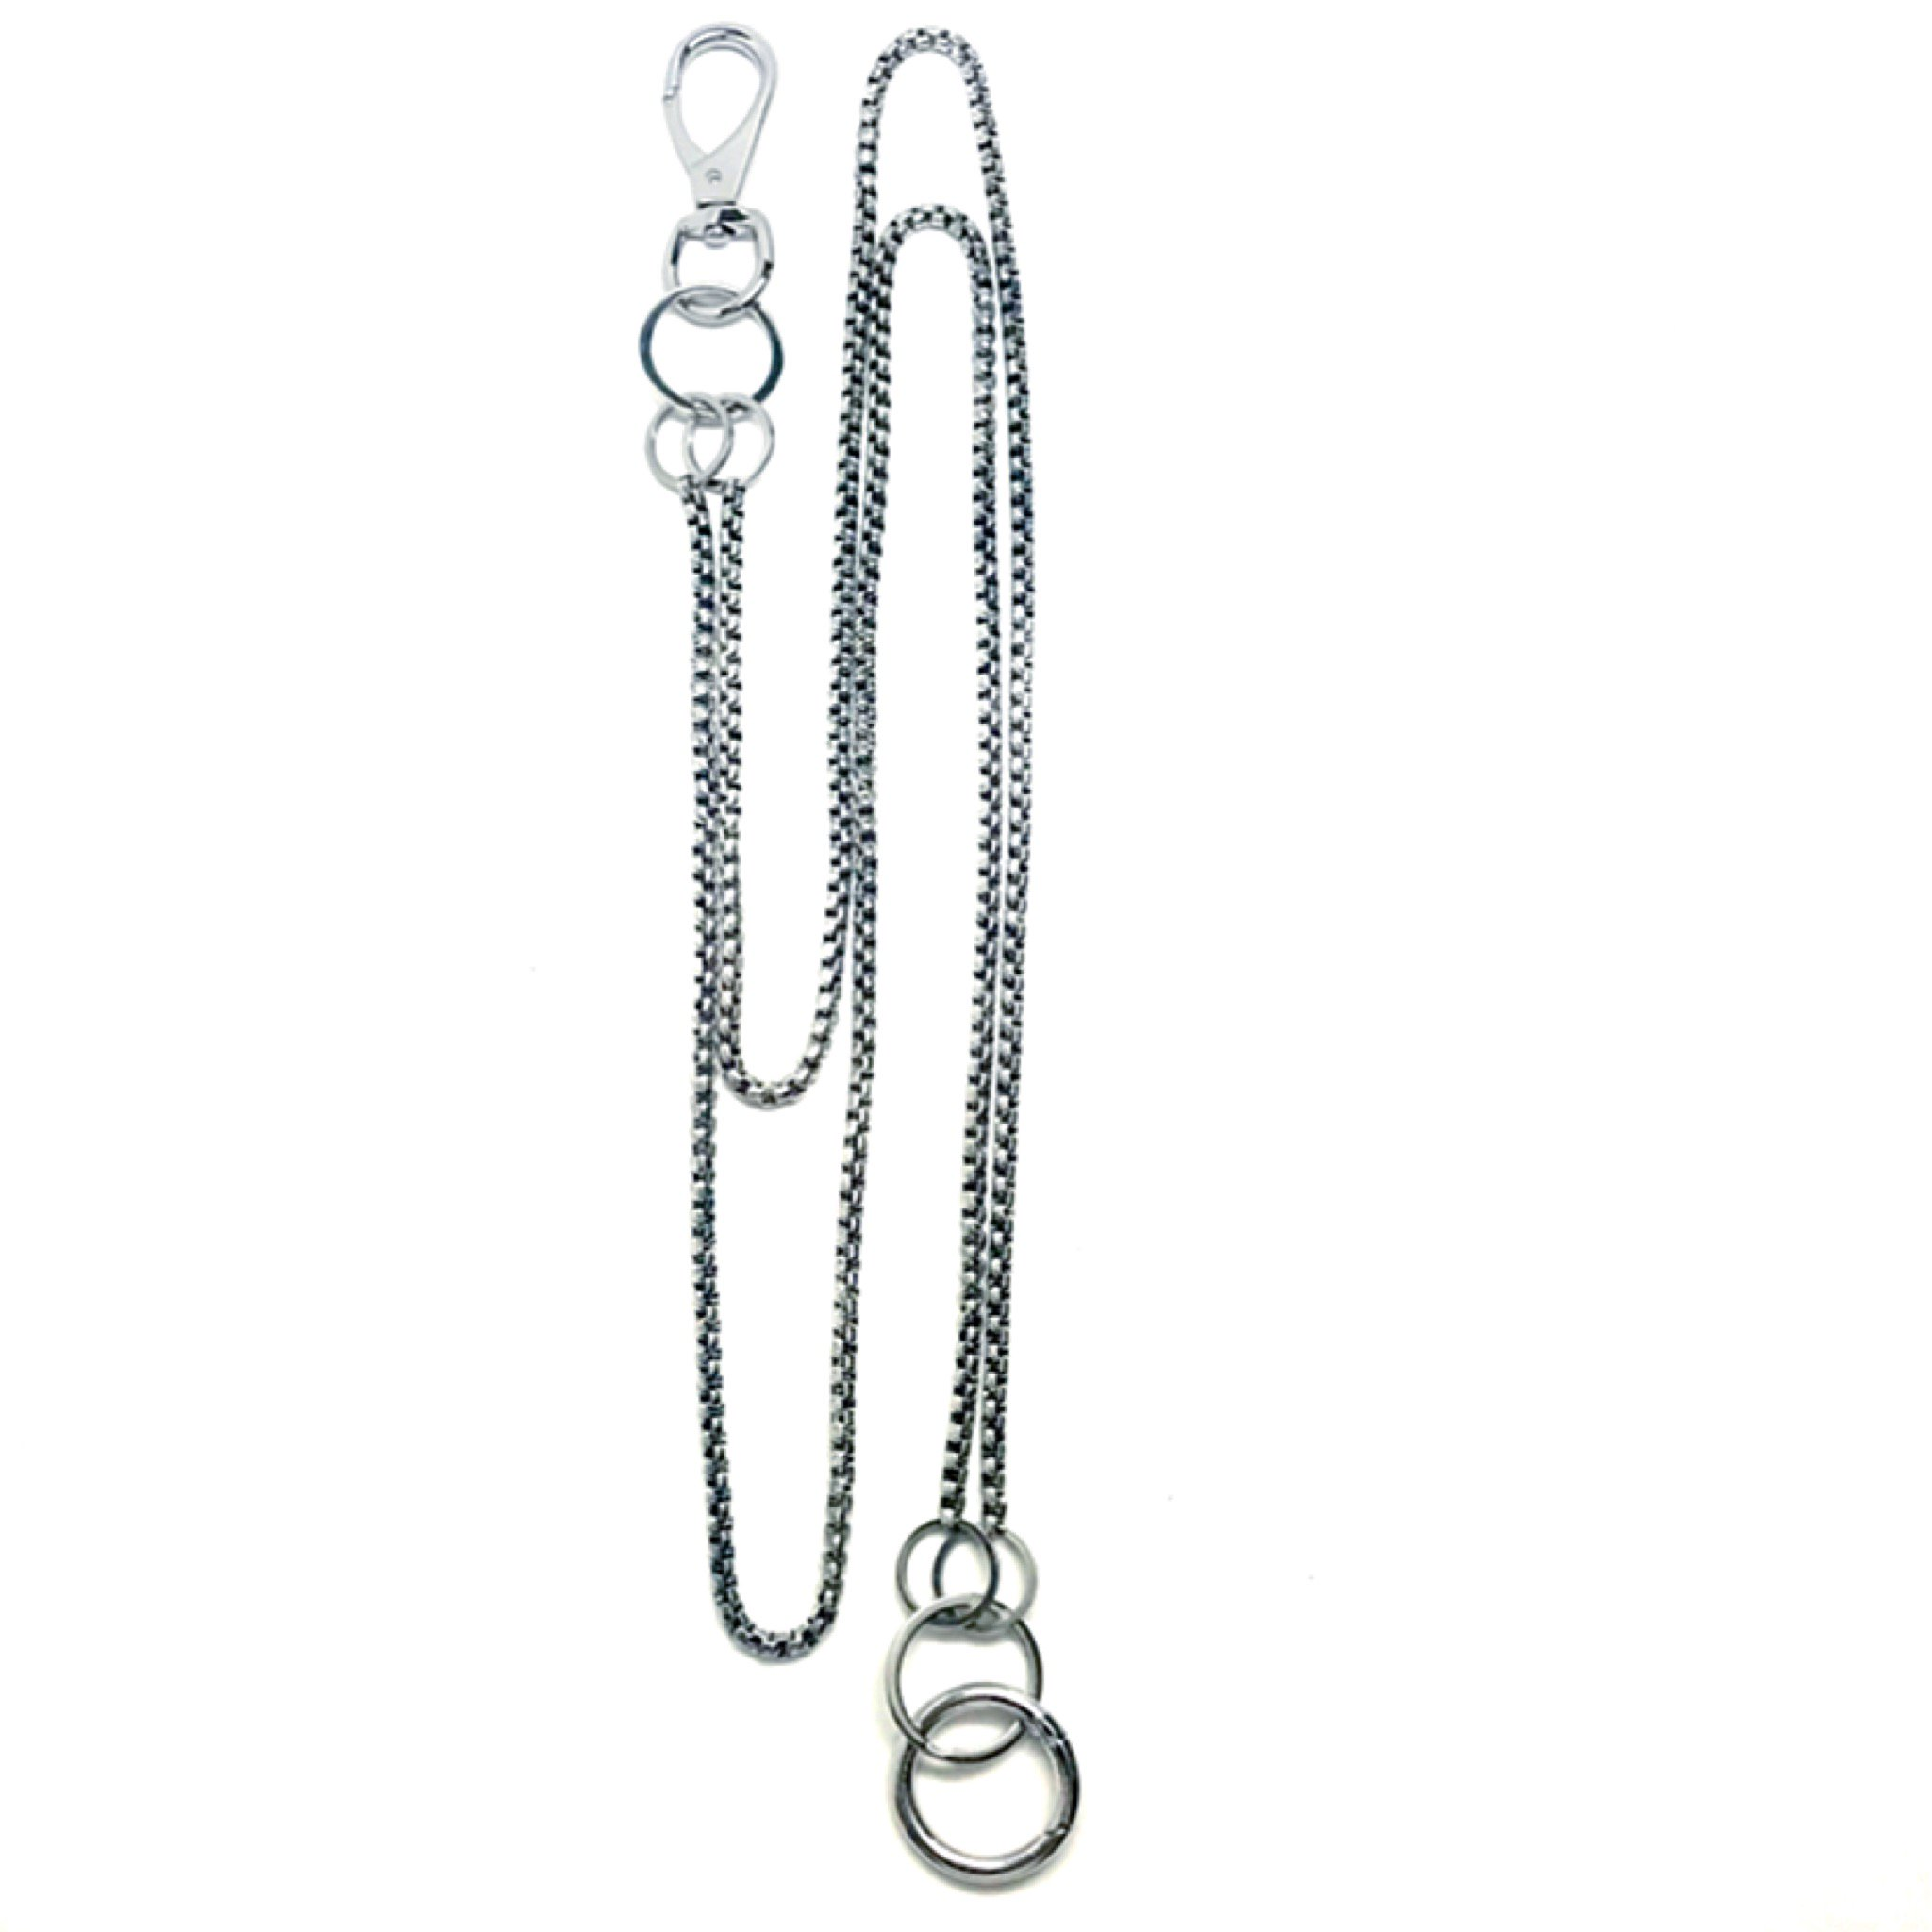 MARTINE ALI-DOUBLE BOXER WALLET CHAIN HEIRLOOM SILVER